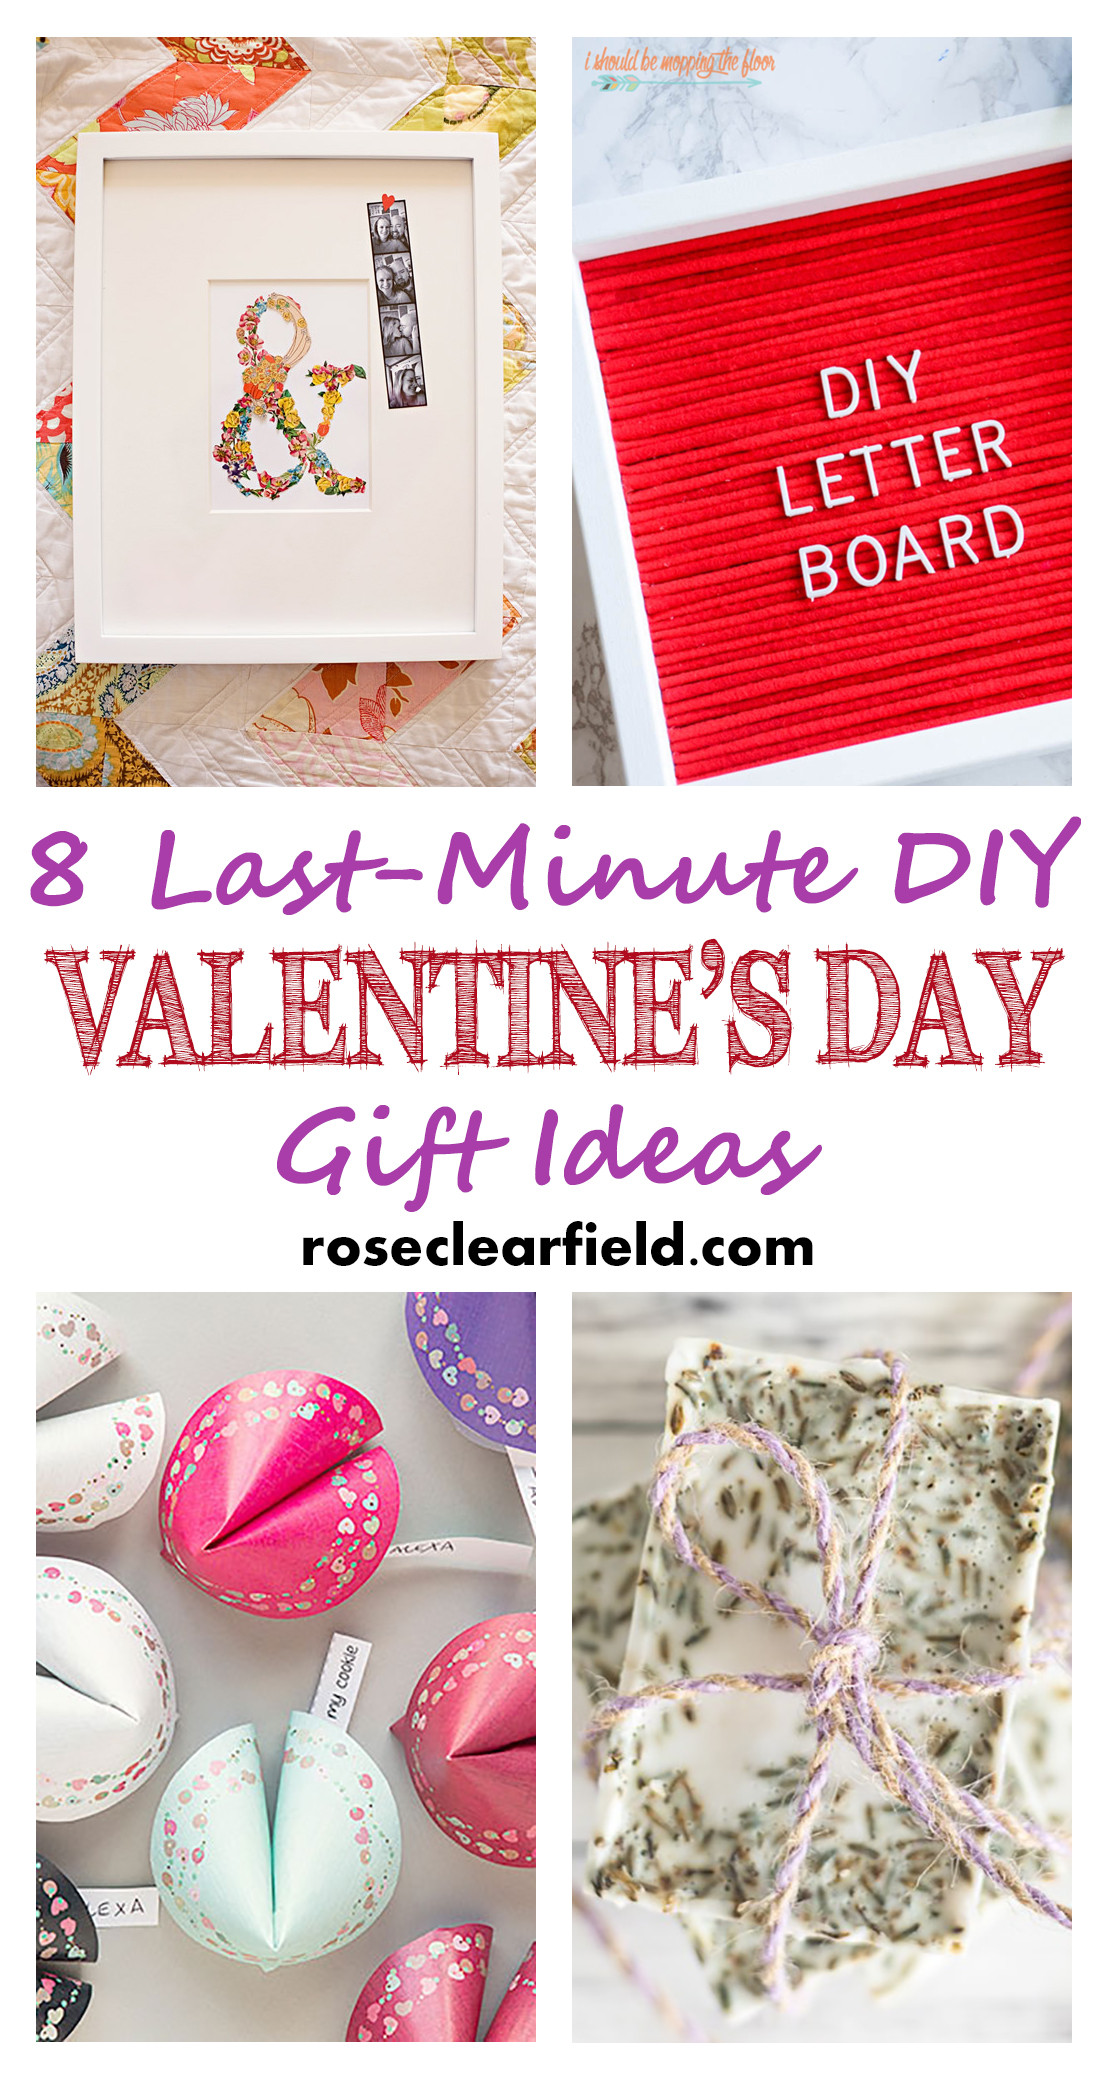 Valentine Day Homemade Gift Ideas  Last Minute DIY Valentine s Day Gift Ideas • Rose Clearfield